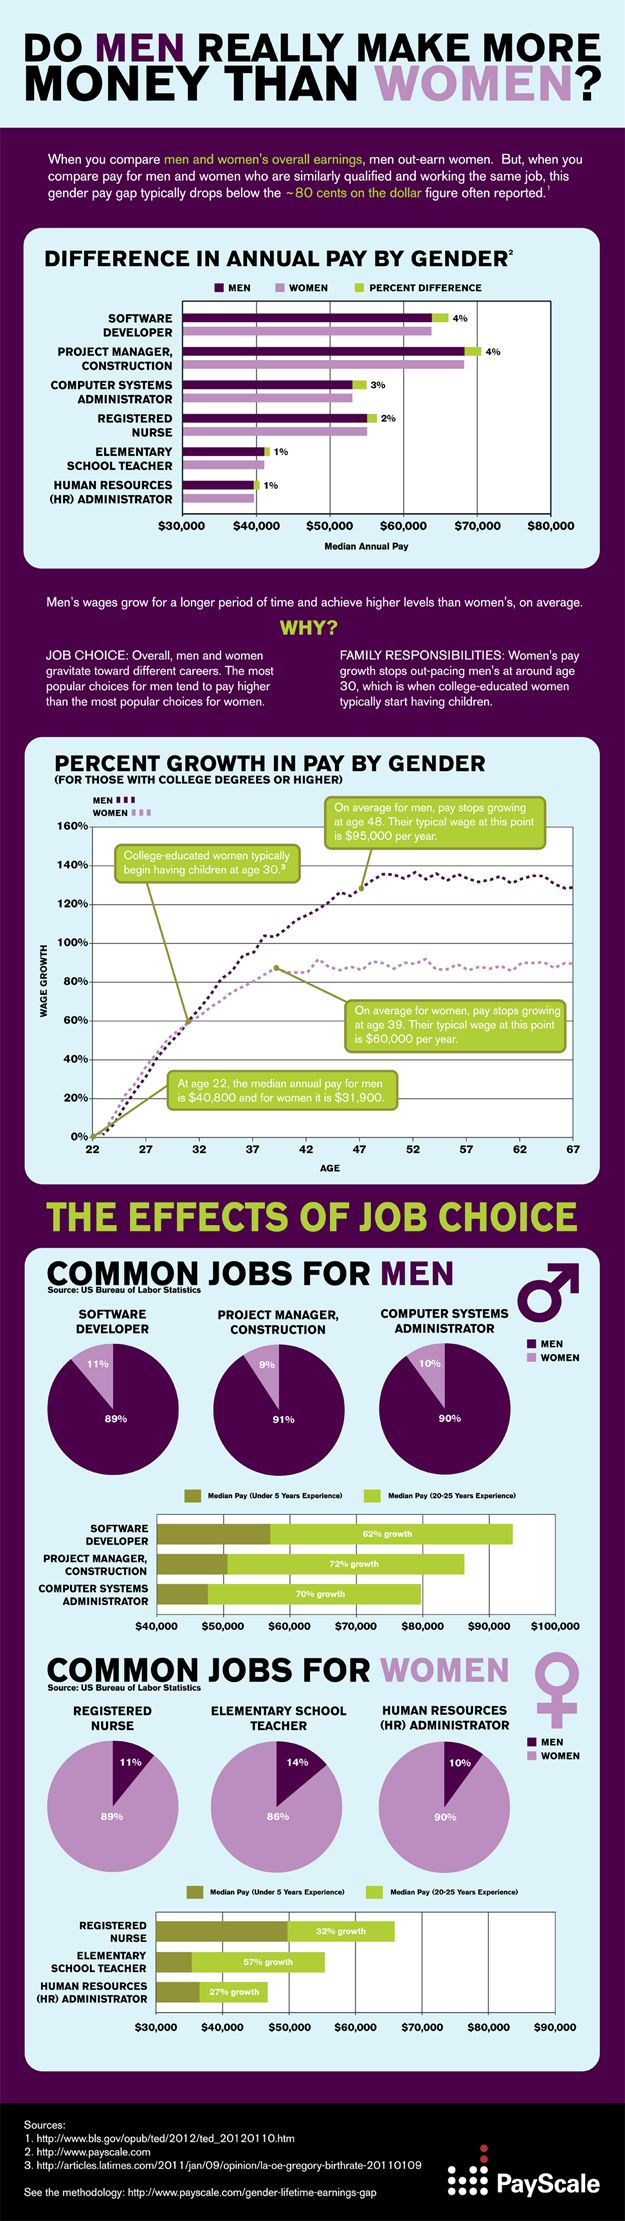 Do Men Really Earn More Than Women? Find out why women's pay growth slows at age 30 and peaks by 39